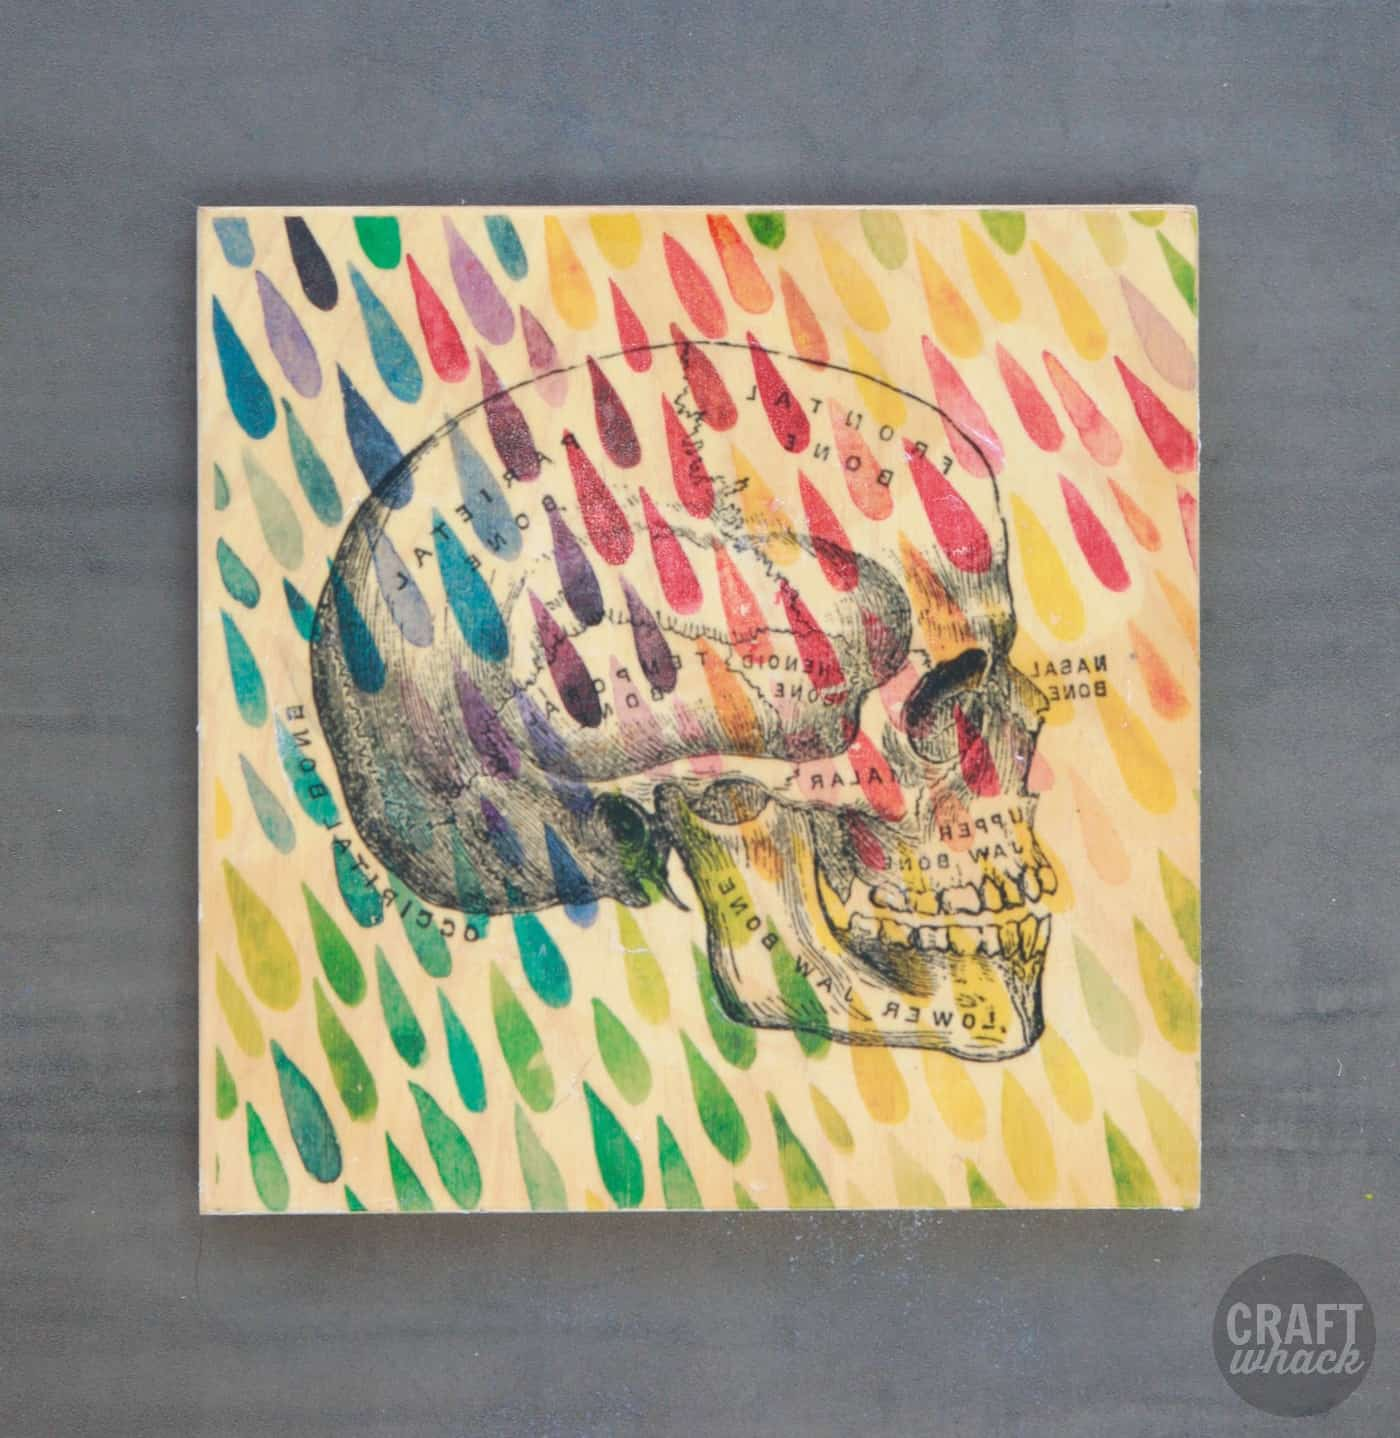 skull and colorful raindrop images transferred onto wood